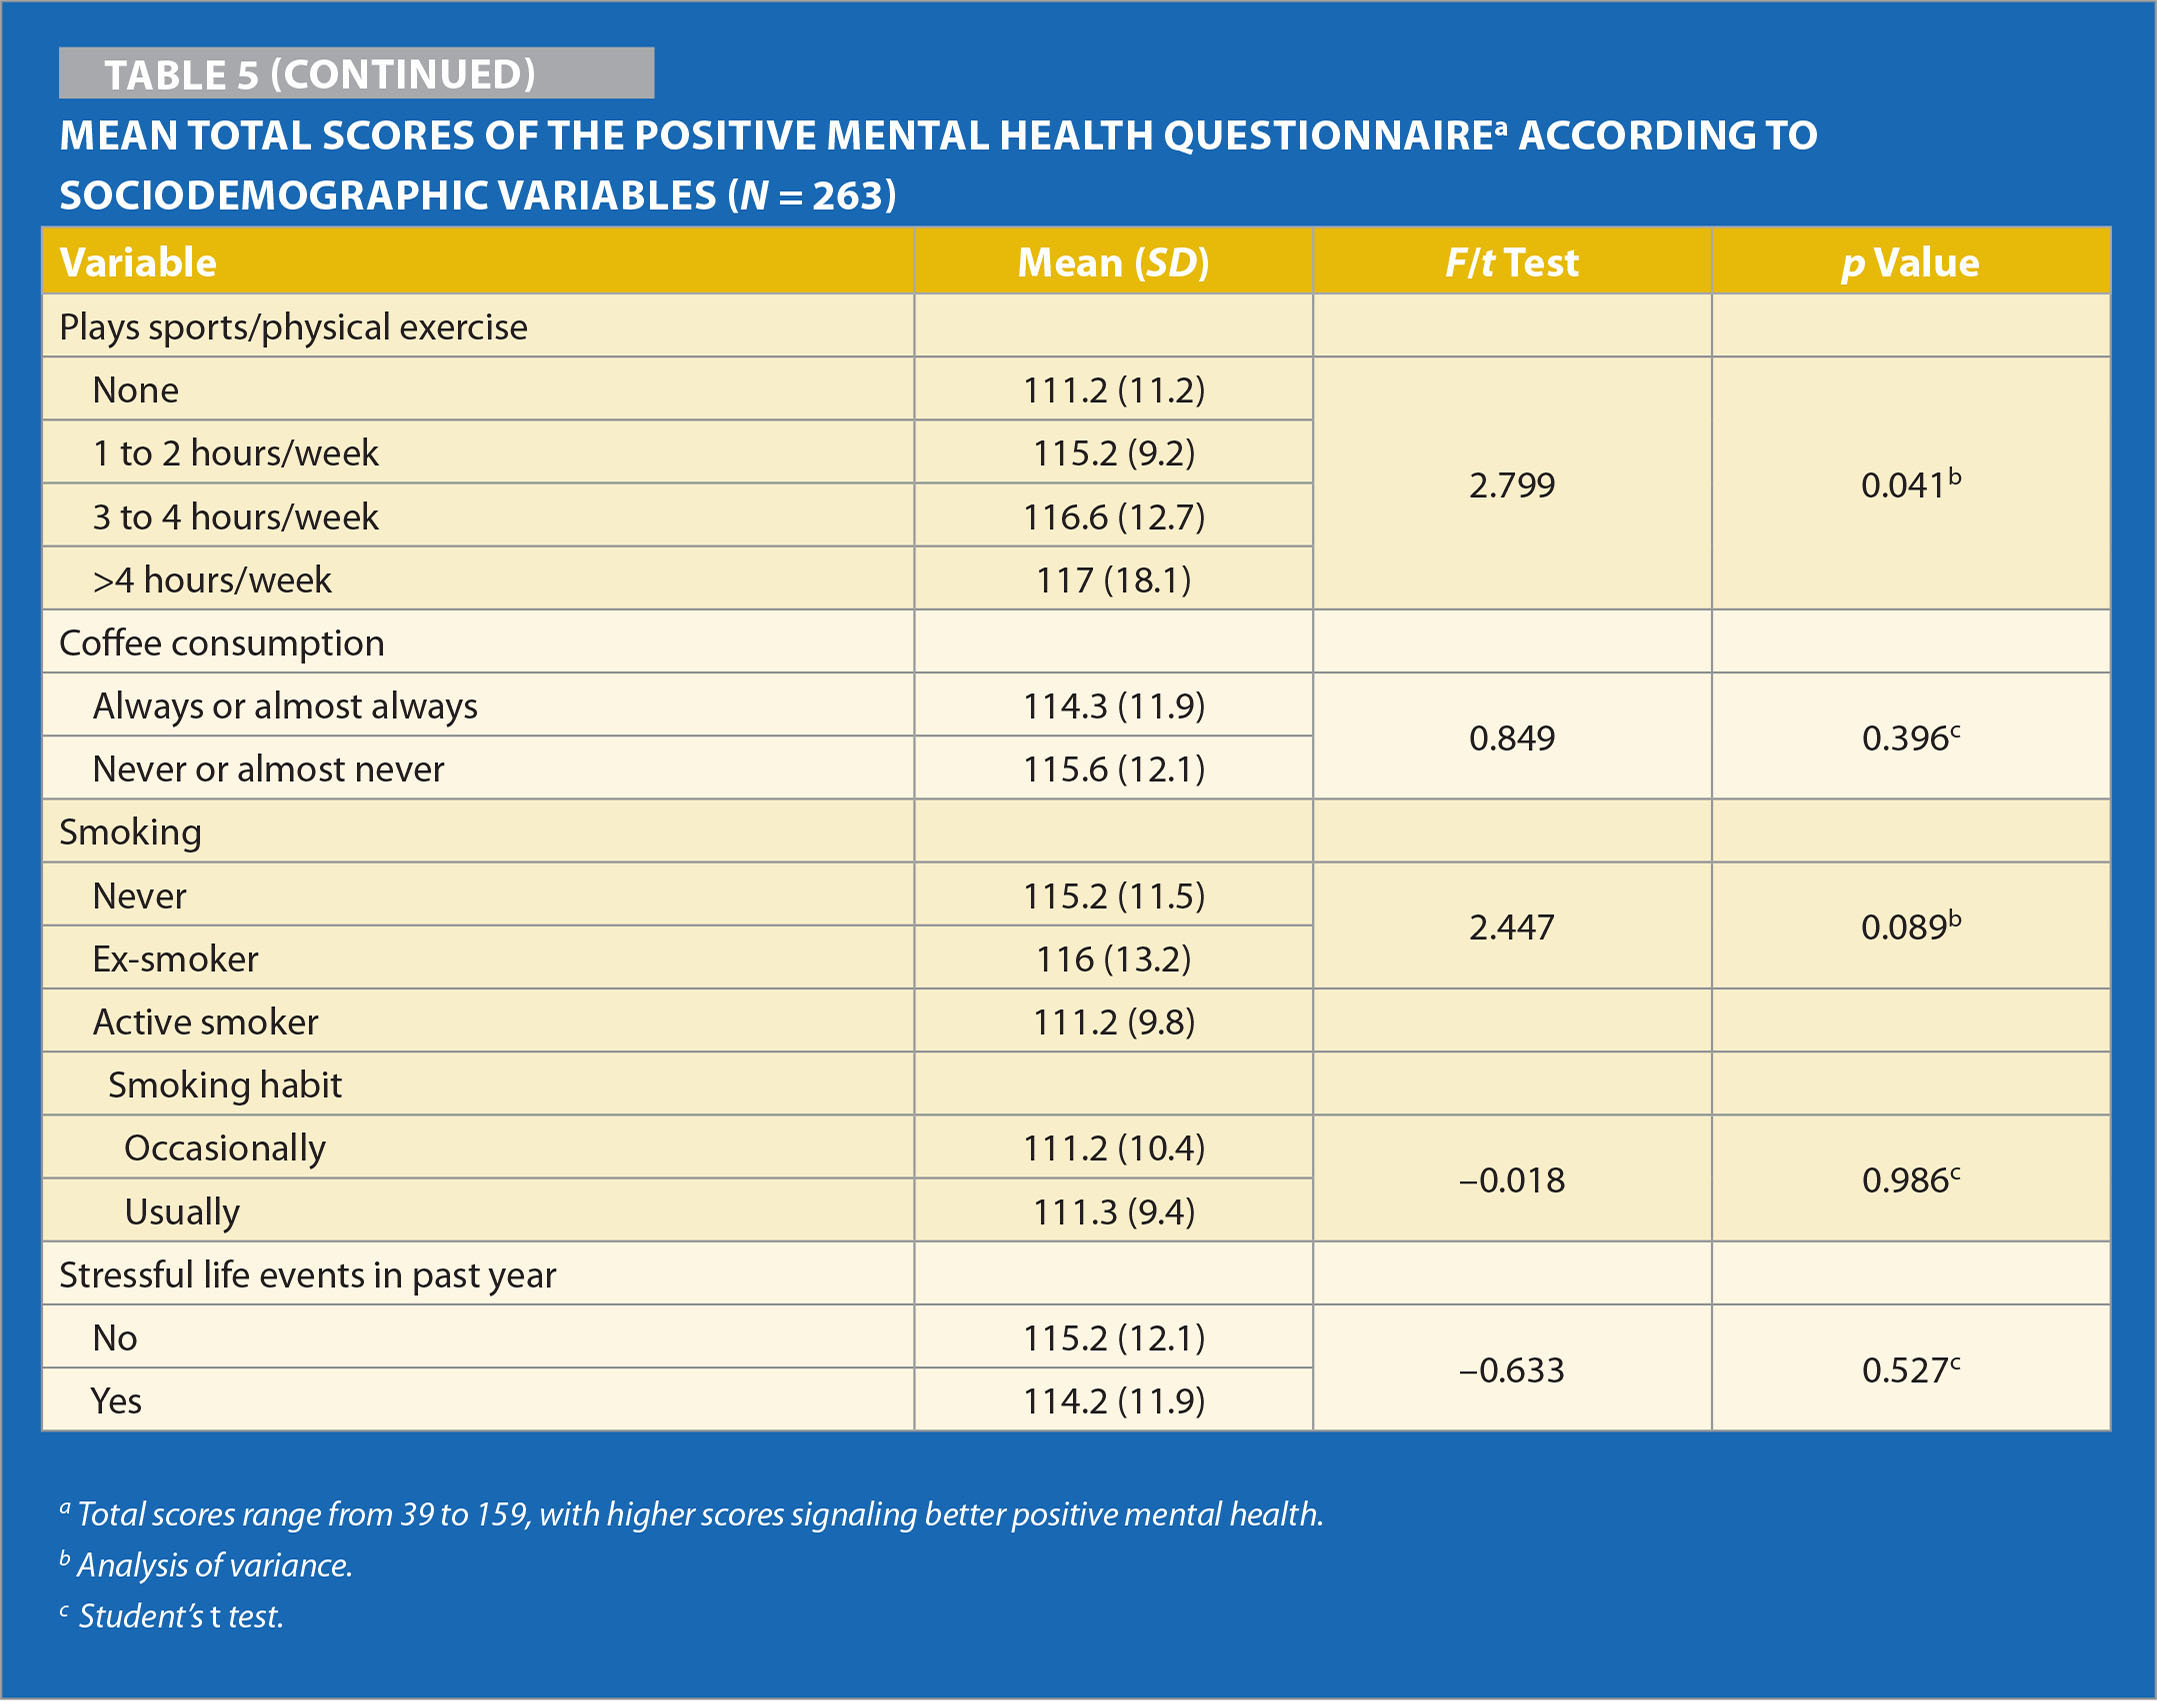 Mean Total Scores of the Positive Mental Health Questionnairea According to Sociodemographic Variables (N = 263)